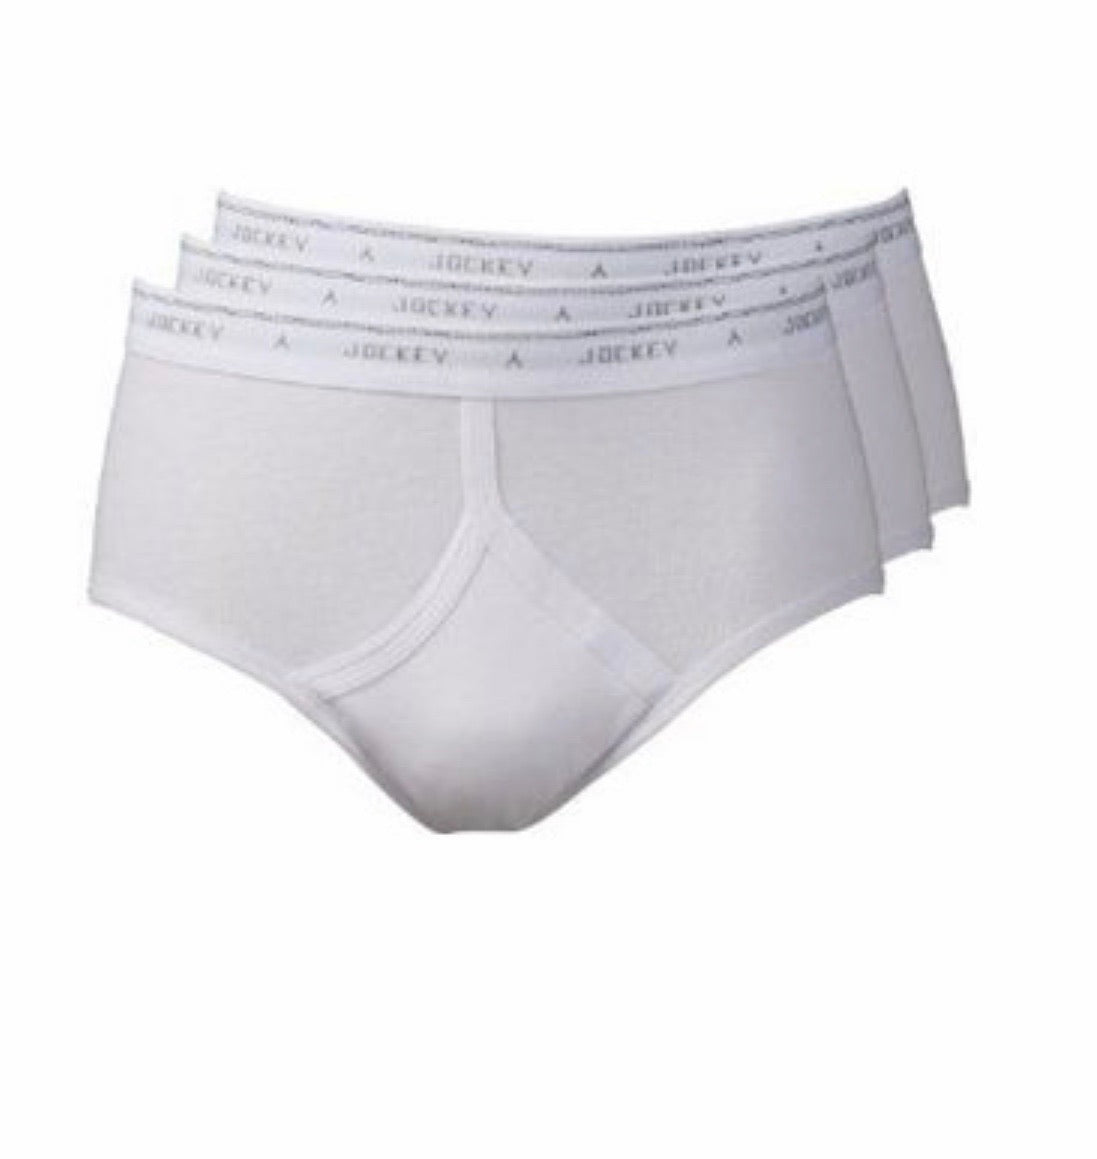 Jockey Classic Y-Front Briefs, Pack of 3,white/white/white